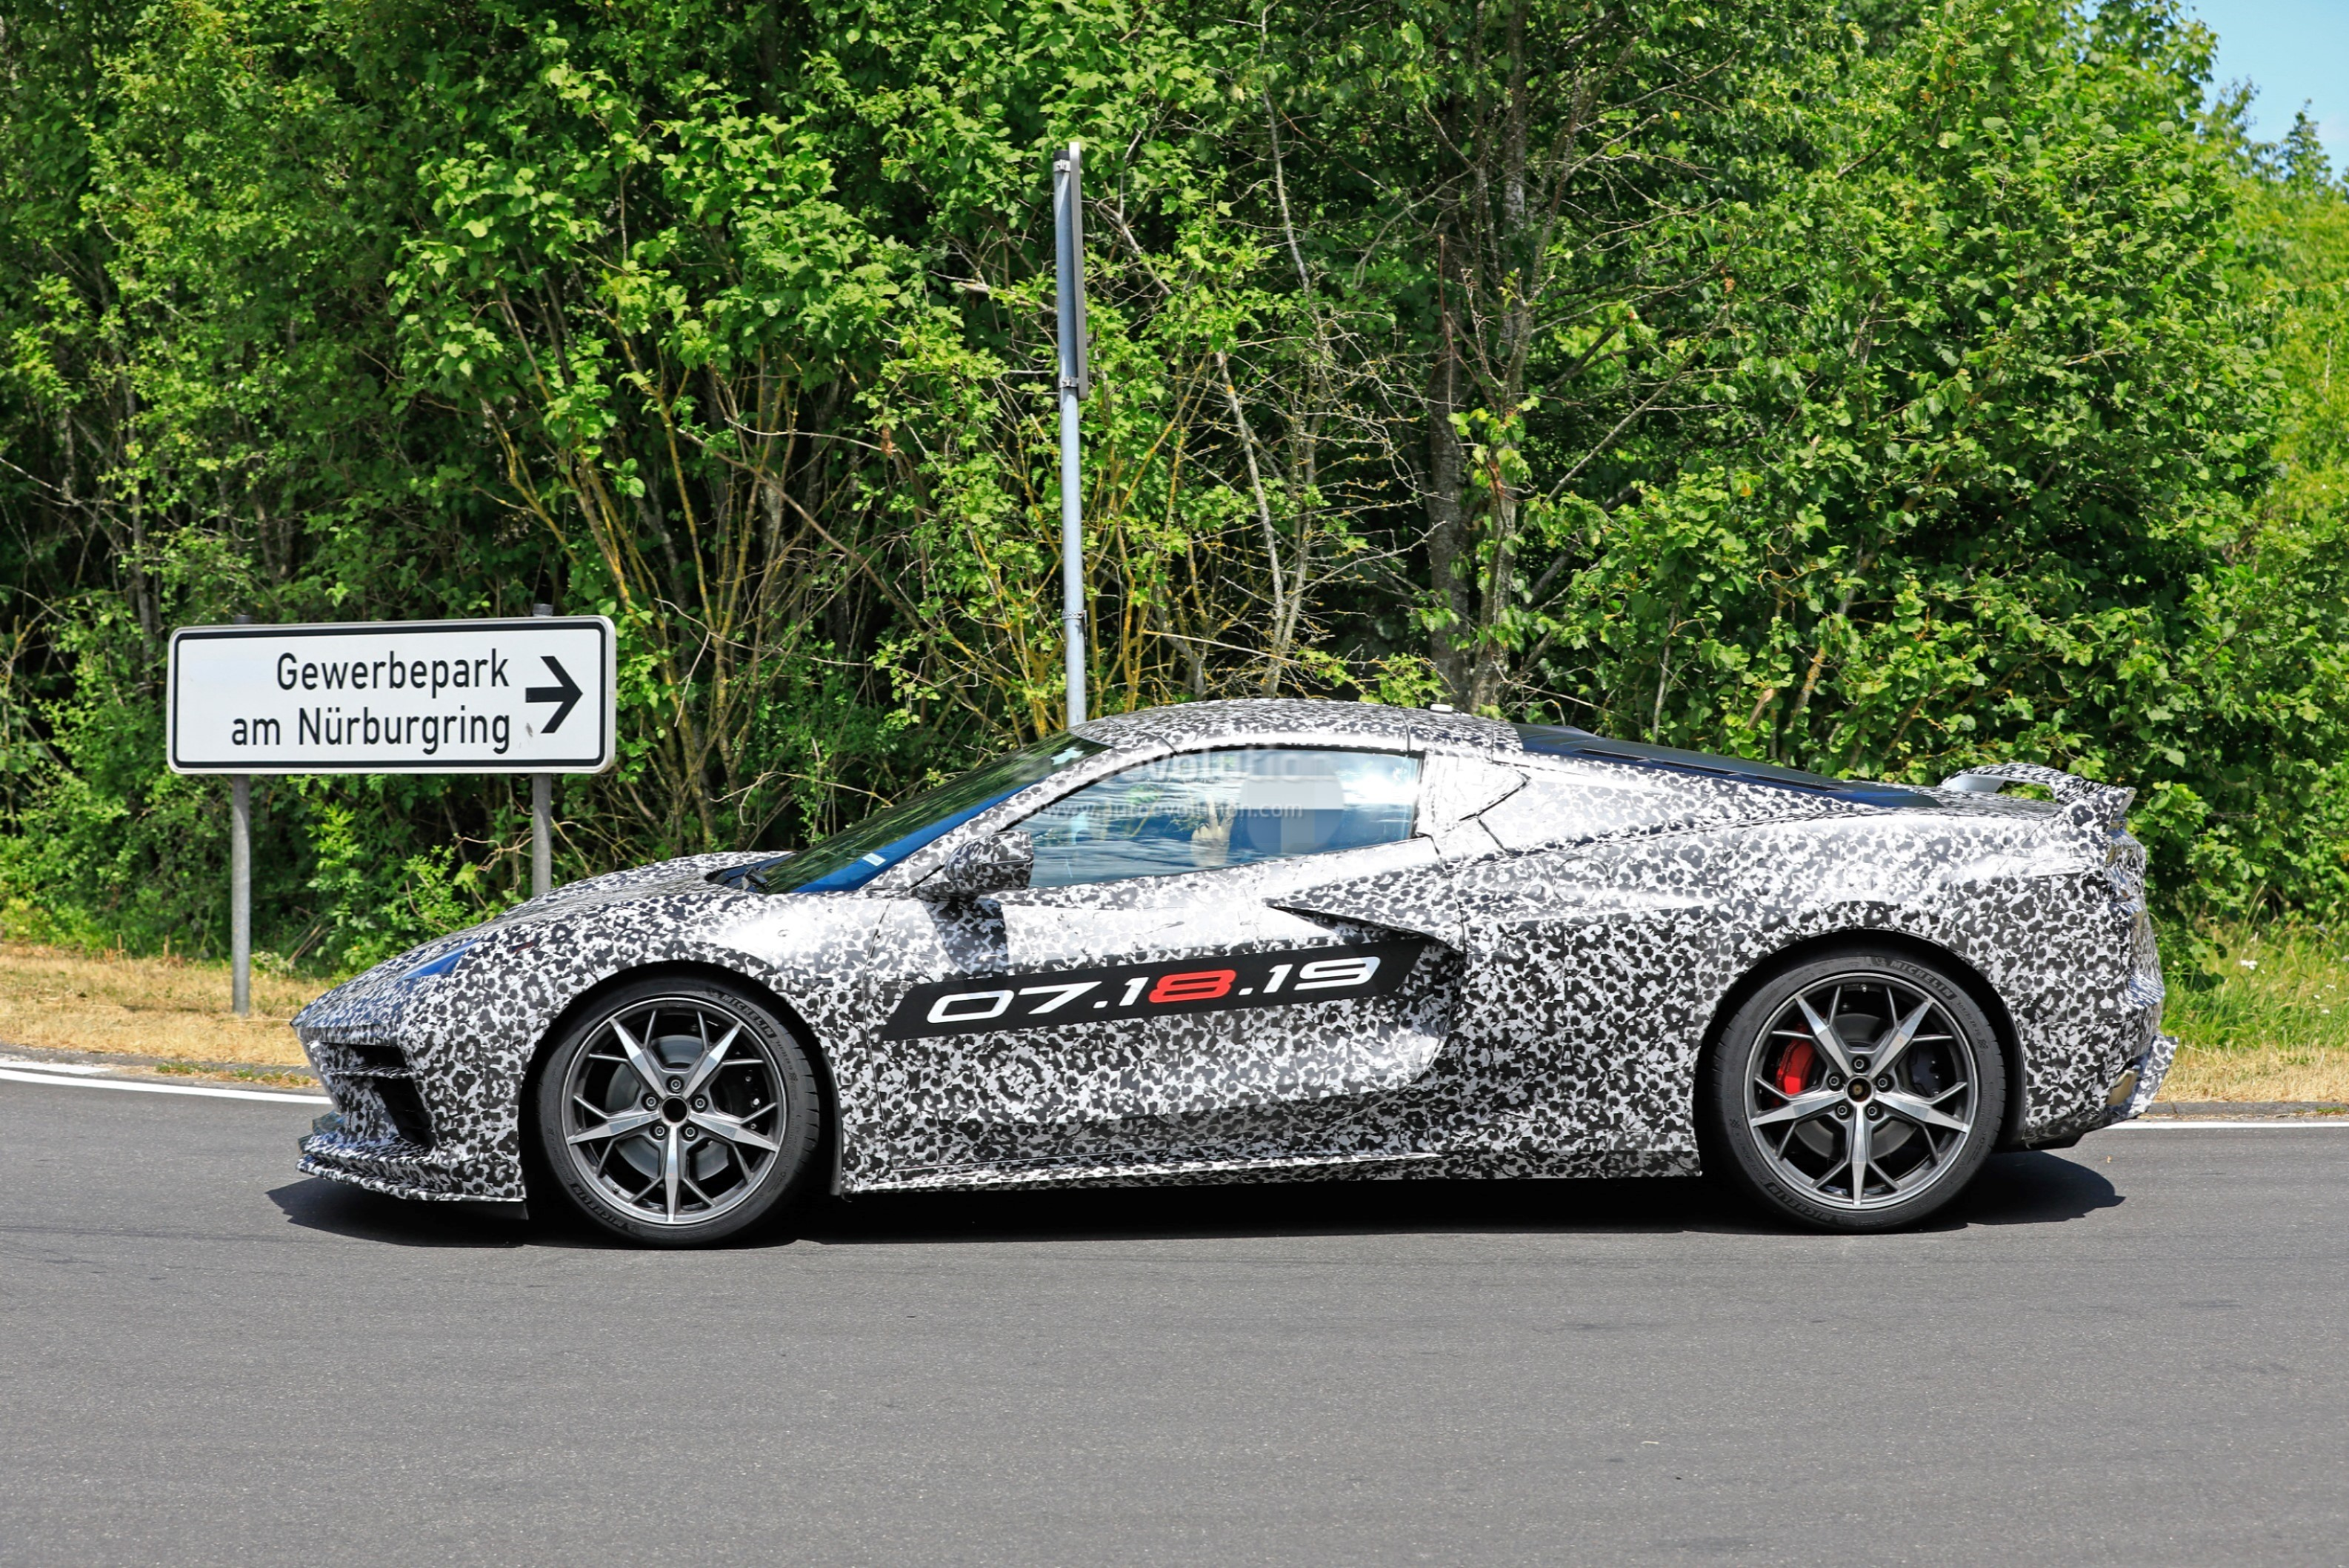 Lt2 V8 Engine In 2020 Chevrolet Corvette Expected To Develop At